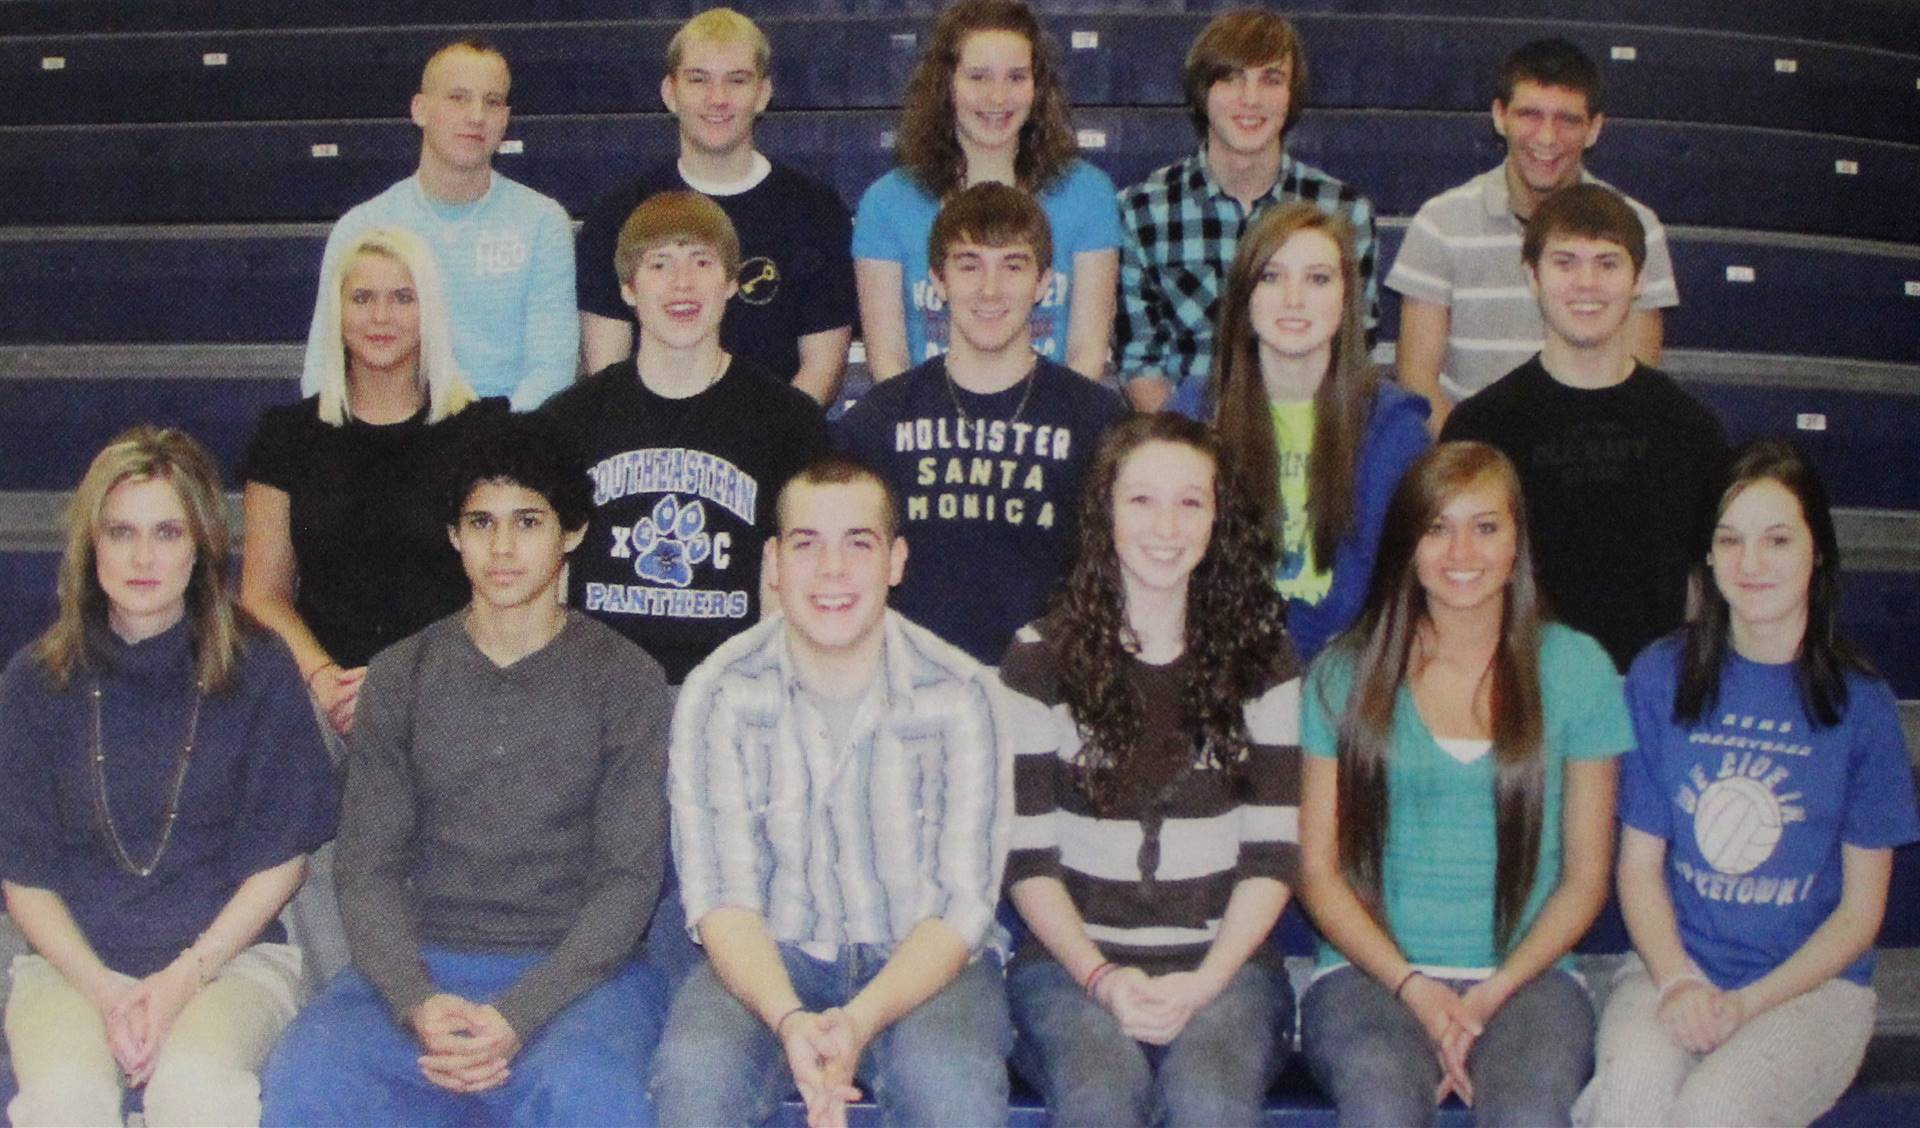 2010 Student Council